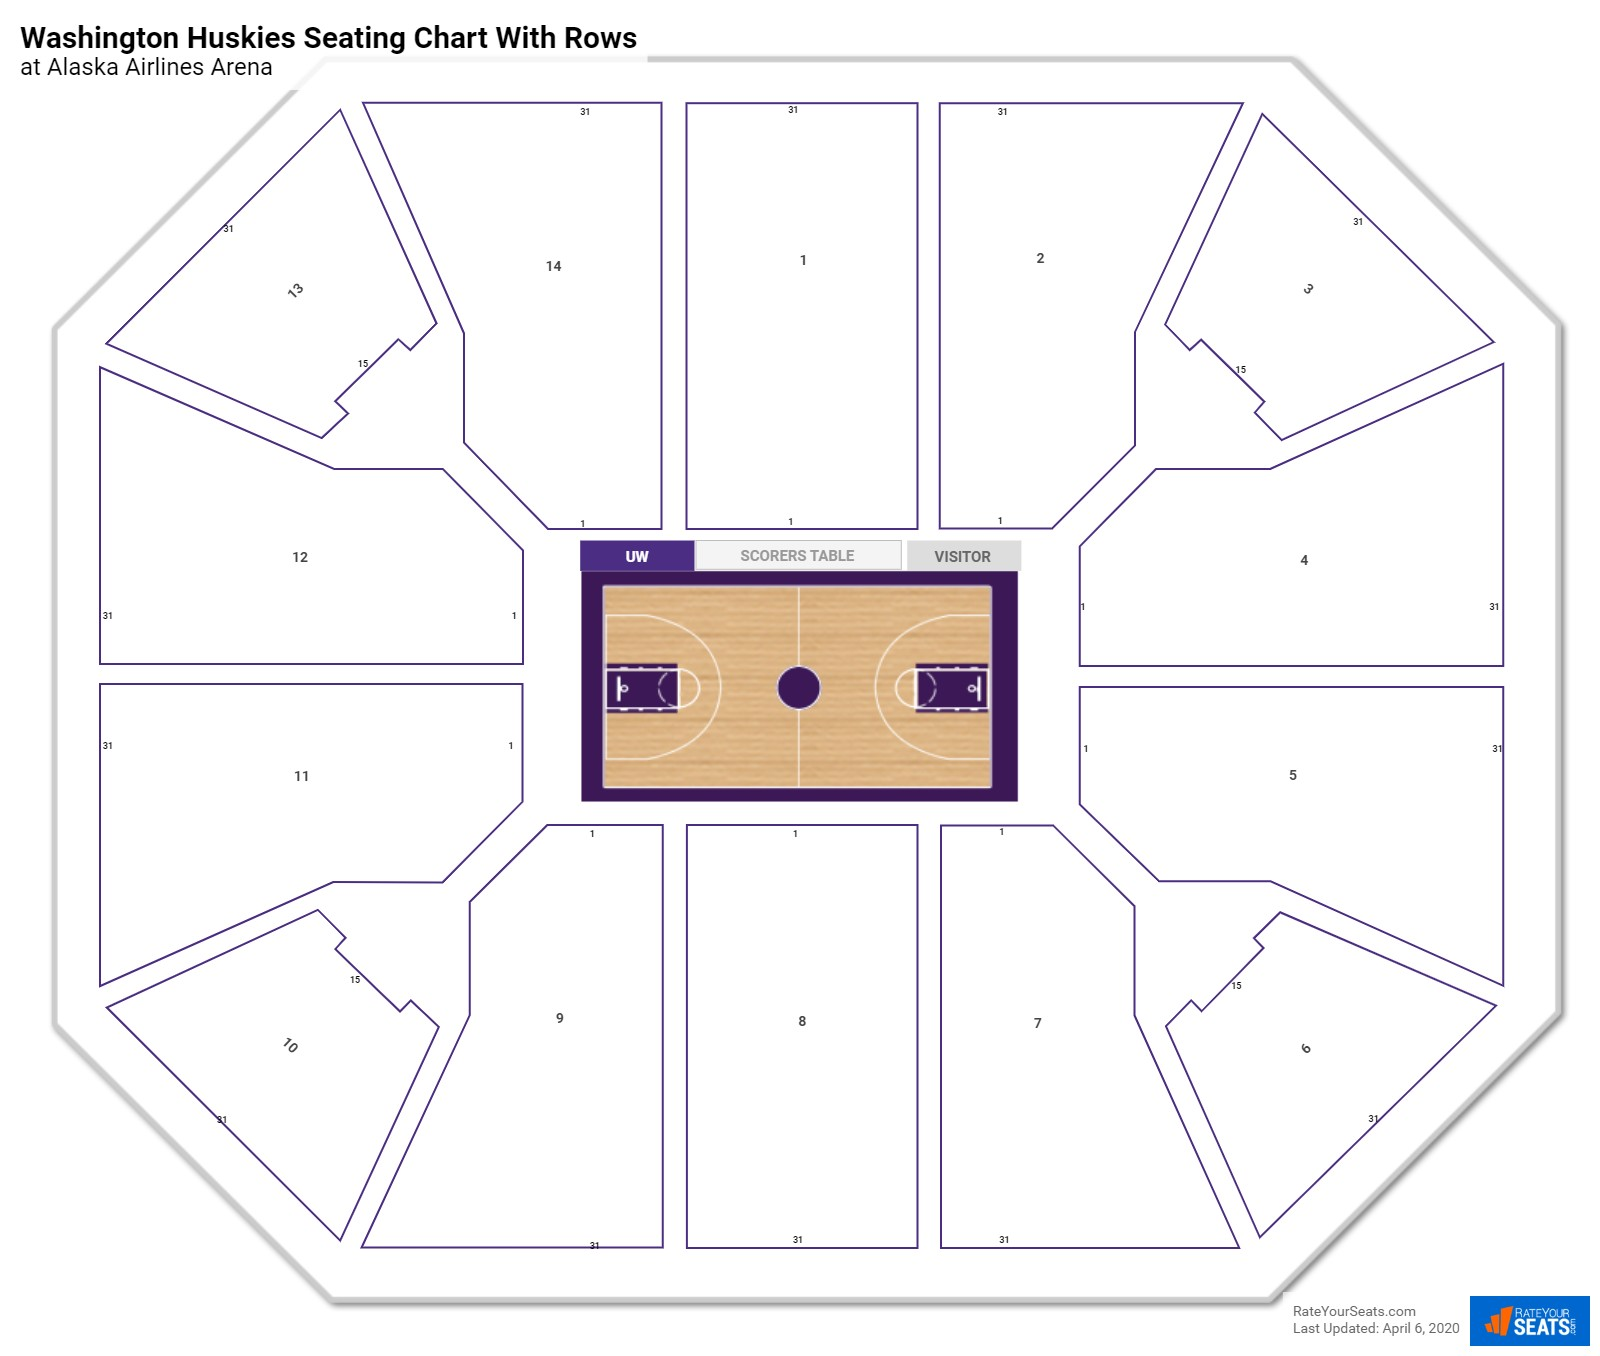 Alaska Airlines Arena seating chart with rows